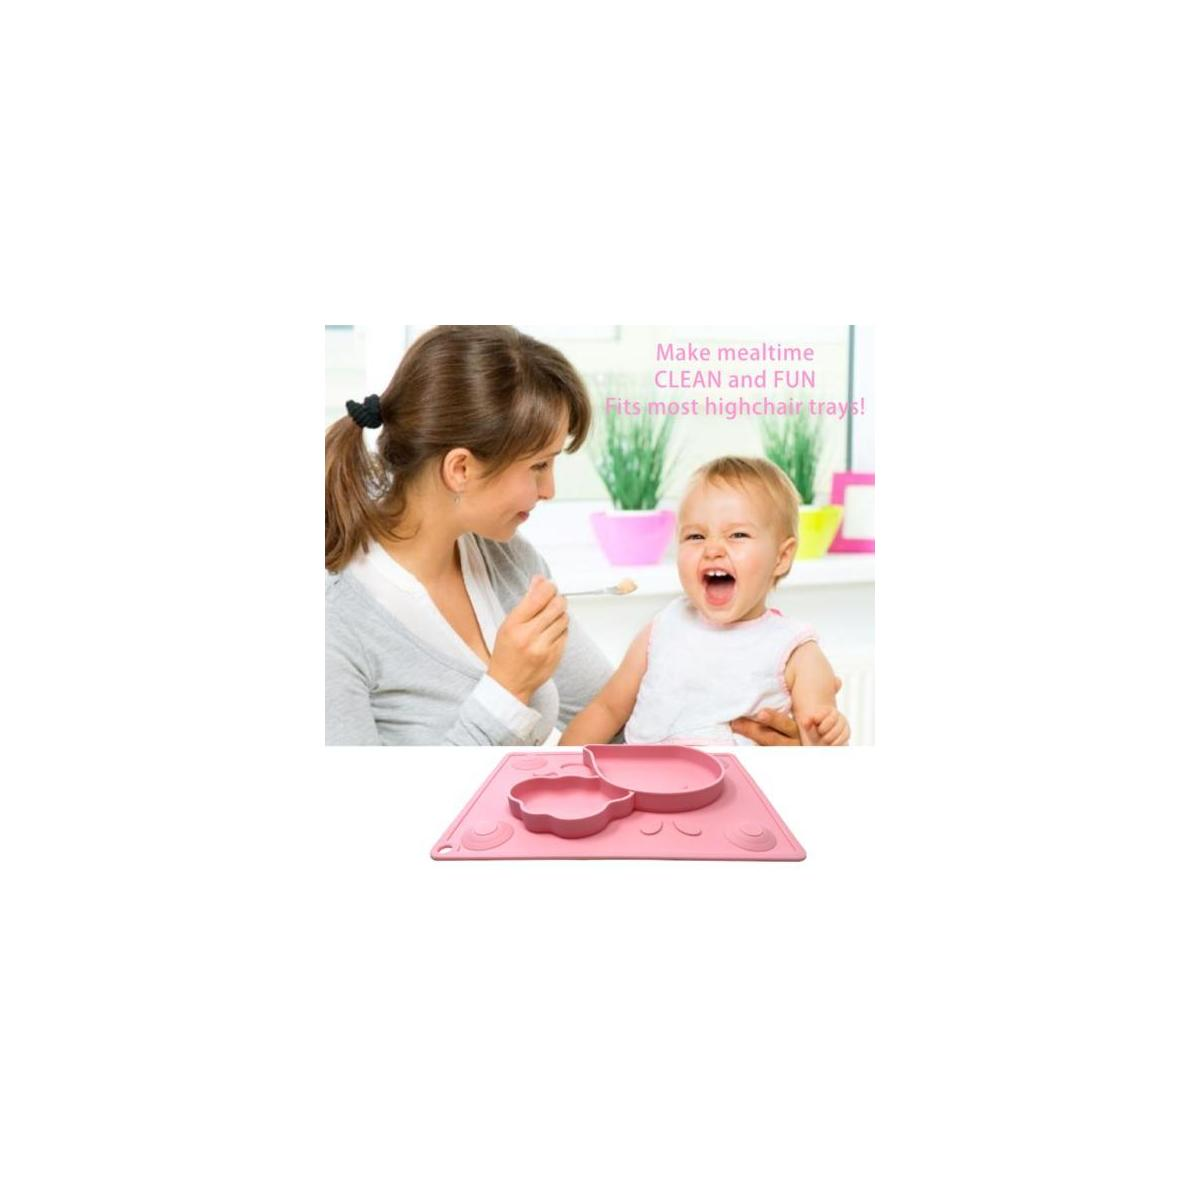 Silicone Placemat for Kids + Bonus Spoon & Fork Set with Carrying case - Portable Baby Plate, Non Toxic, Dishwasher + Microwave + Oven Safe, Table Suction, Easy to Clean, by Koality Goods - Baby Pink